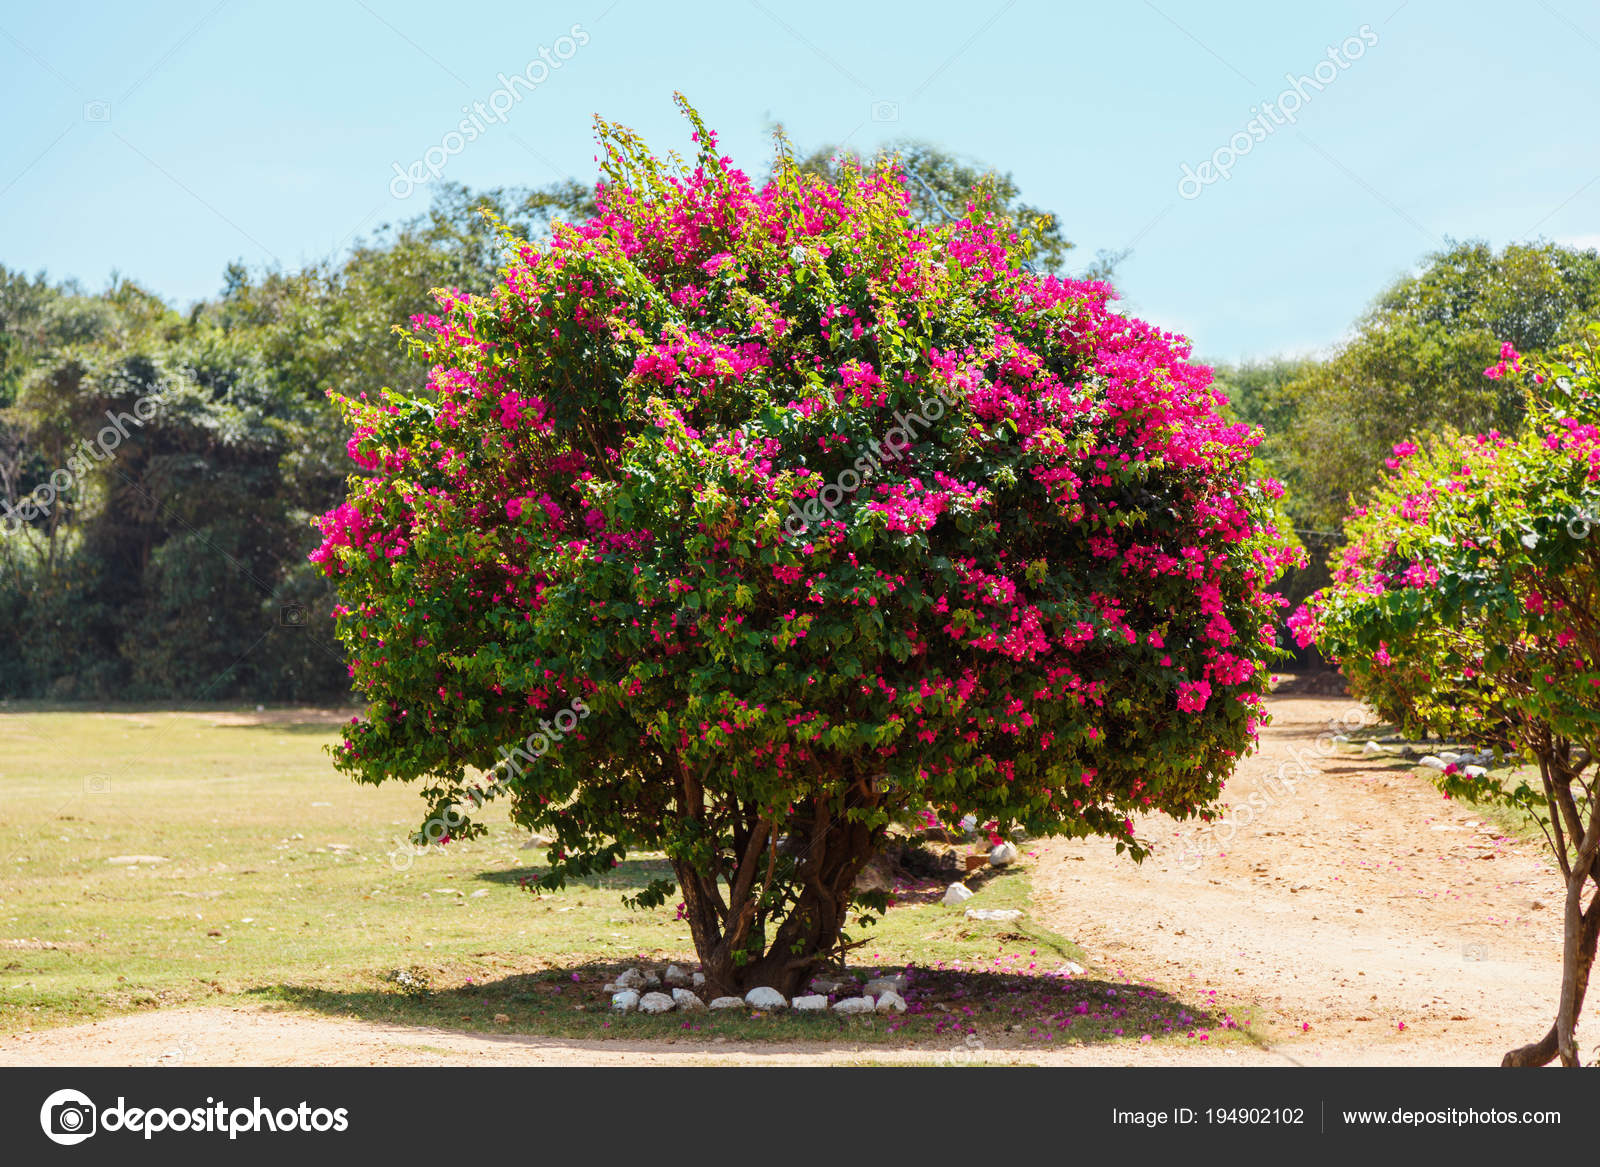 Large flowering bush with pink flowers stock photo batechenkofff large flowering bush with pink flowers stock photo mightylinksfo